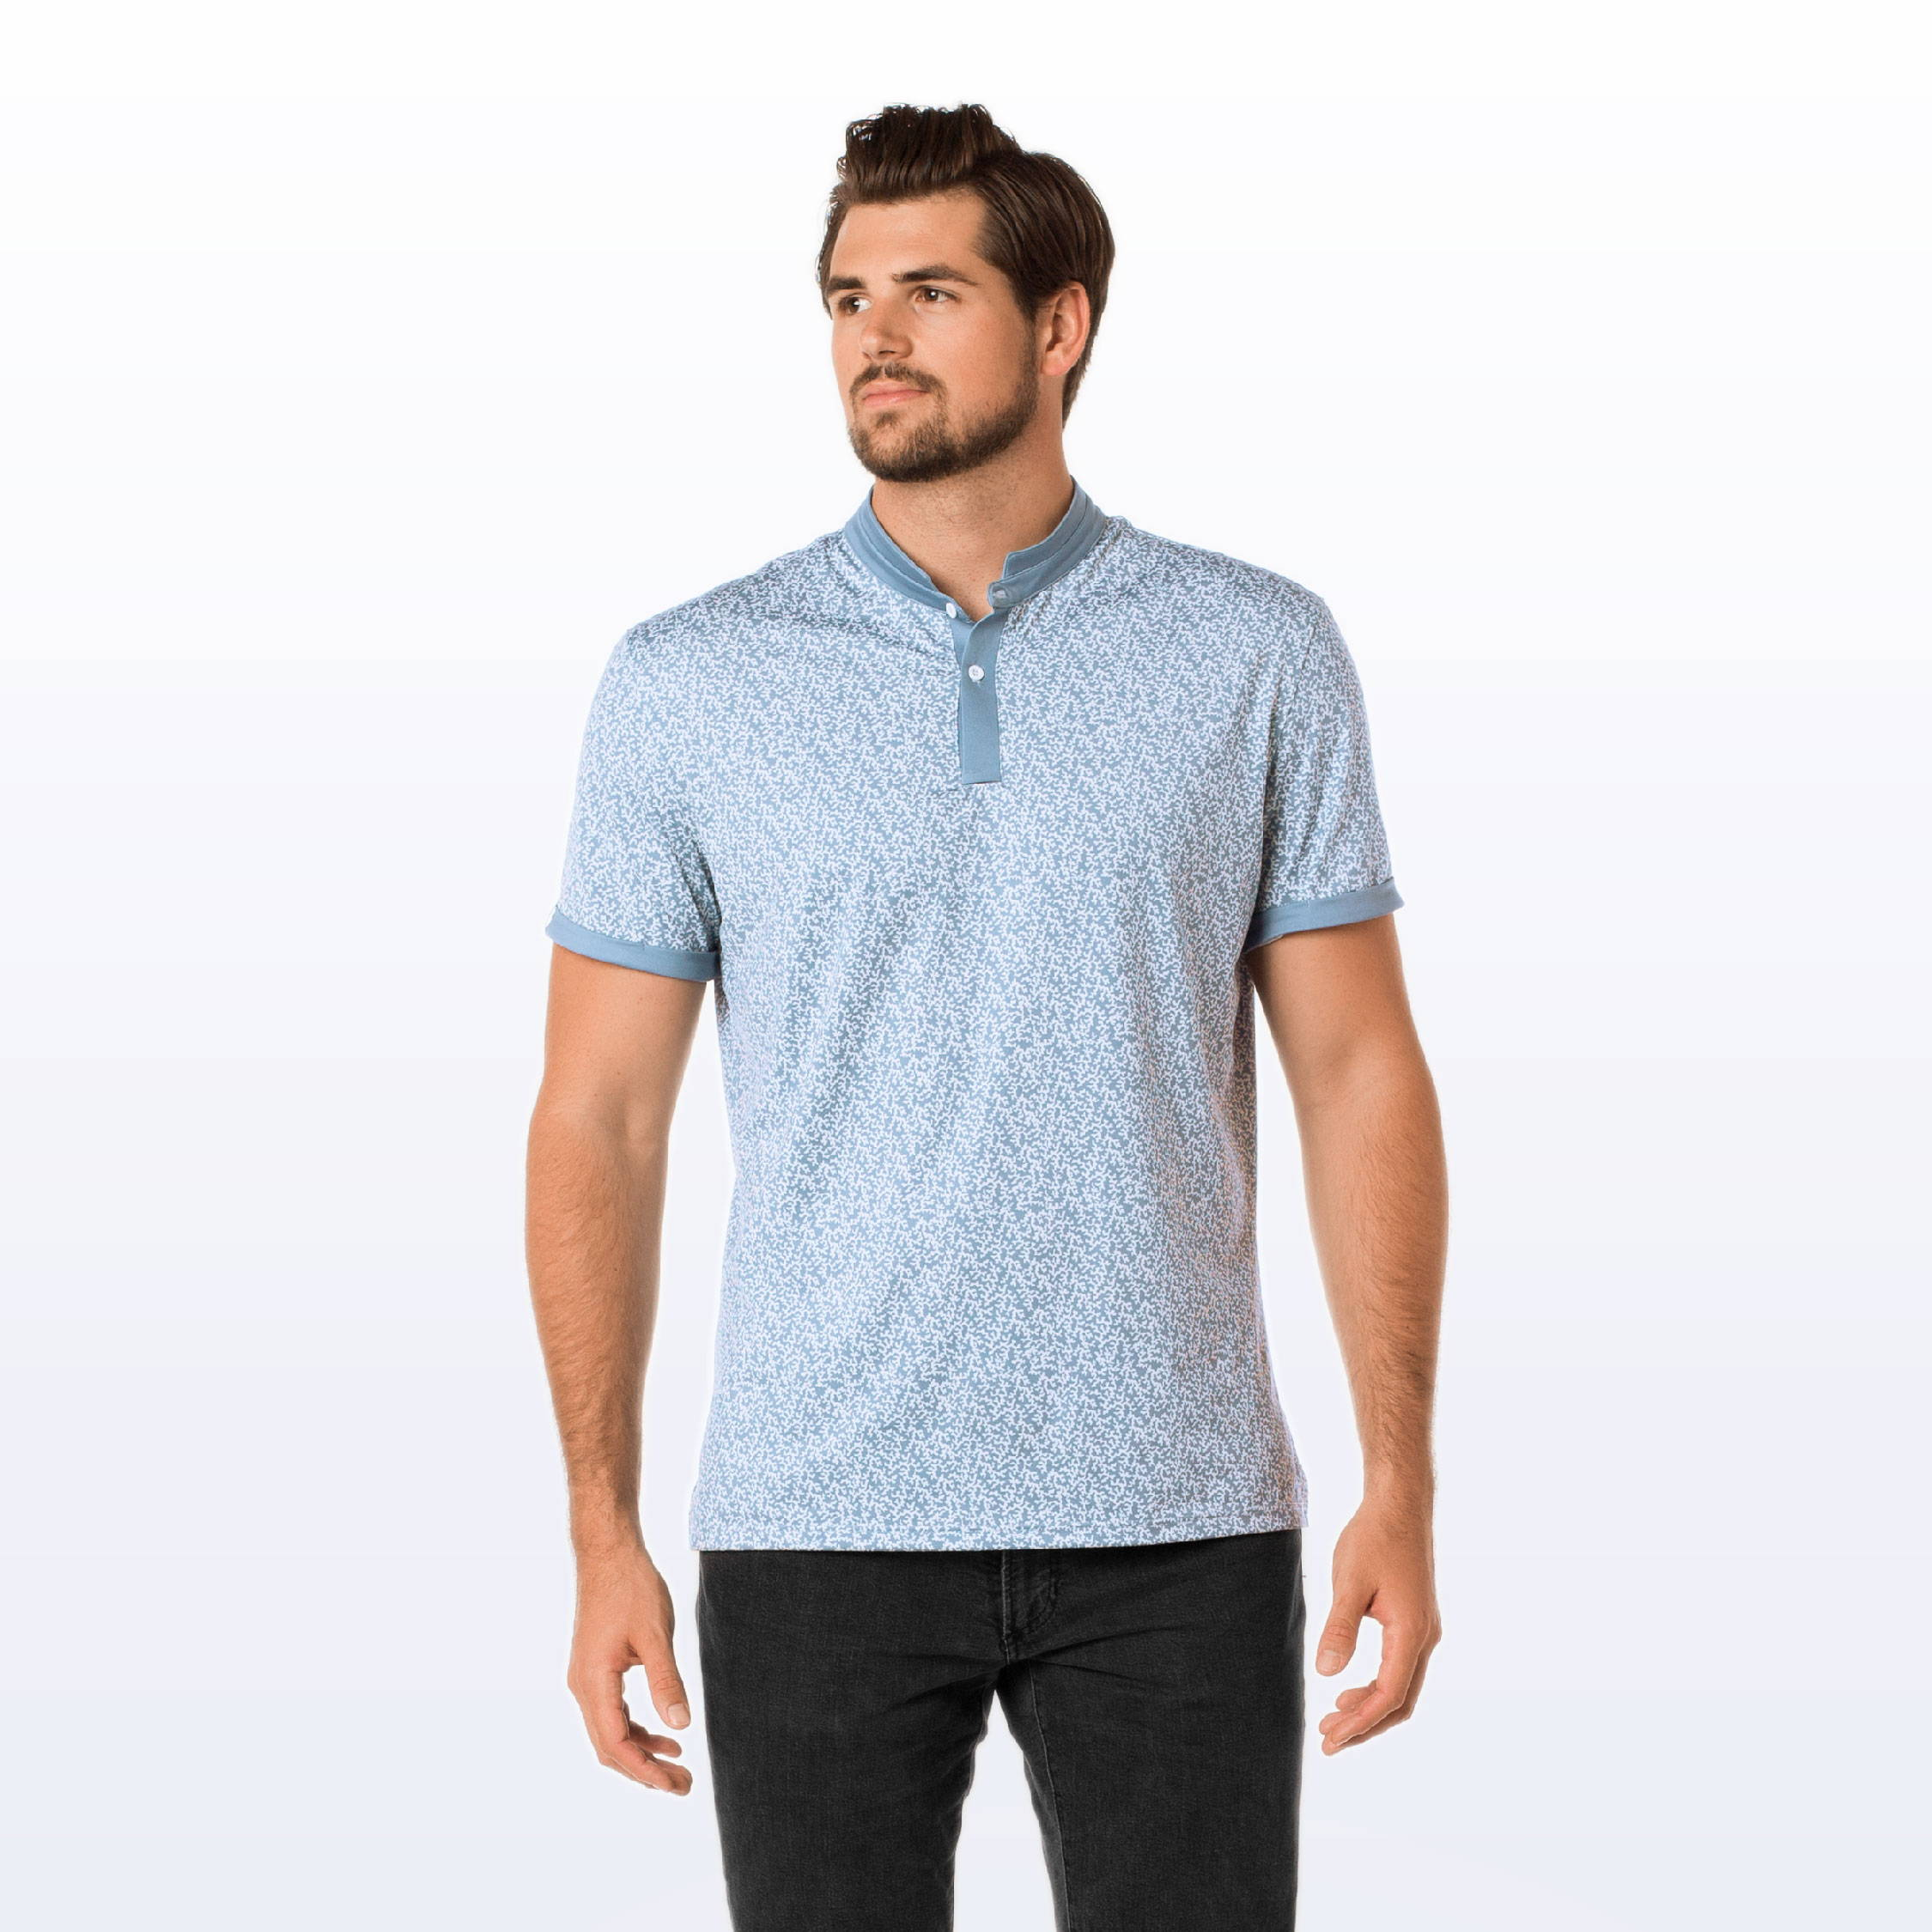 MANTRA The Coral Polo - made sustainably from repurposed materials